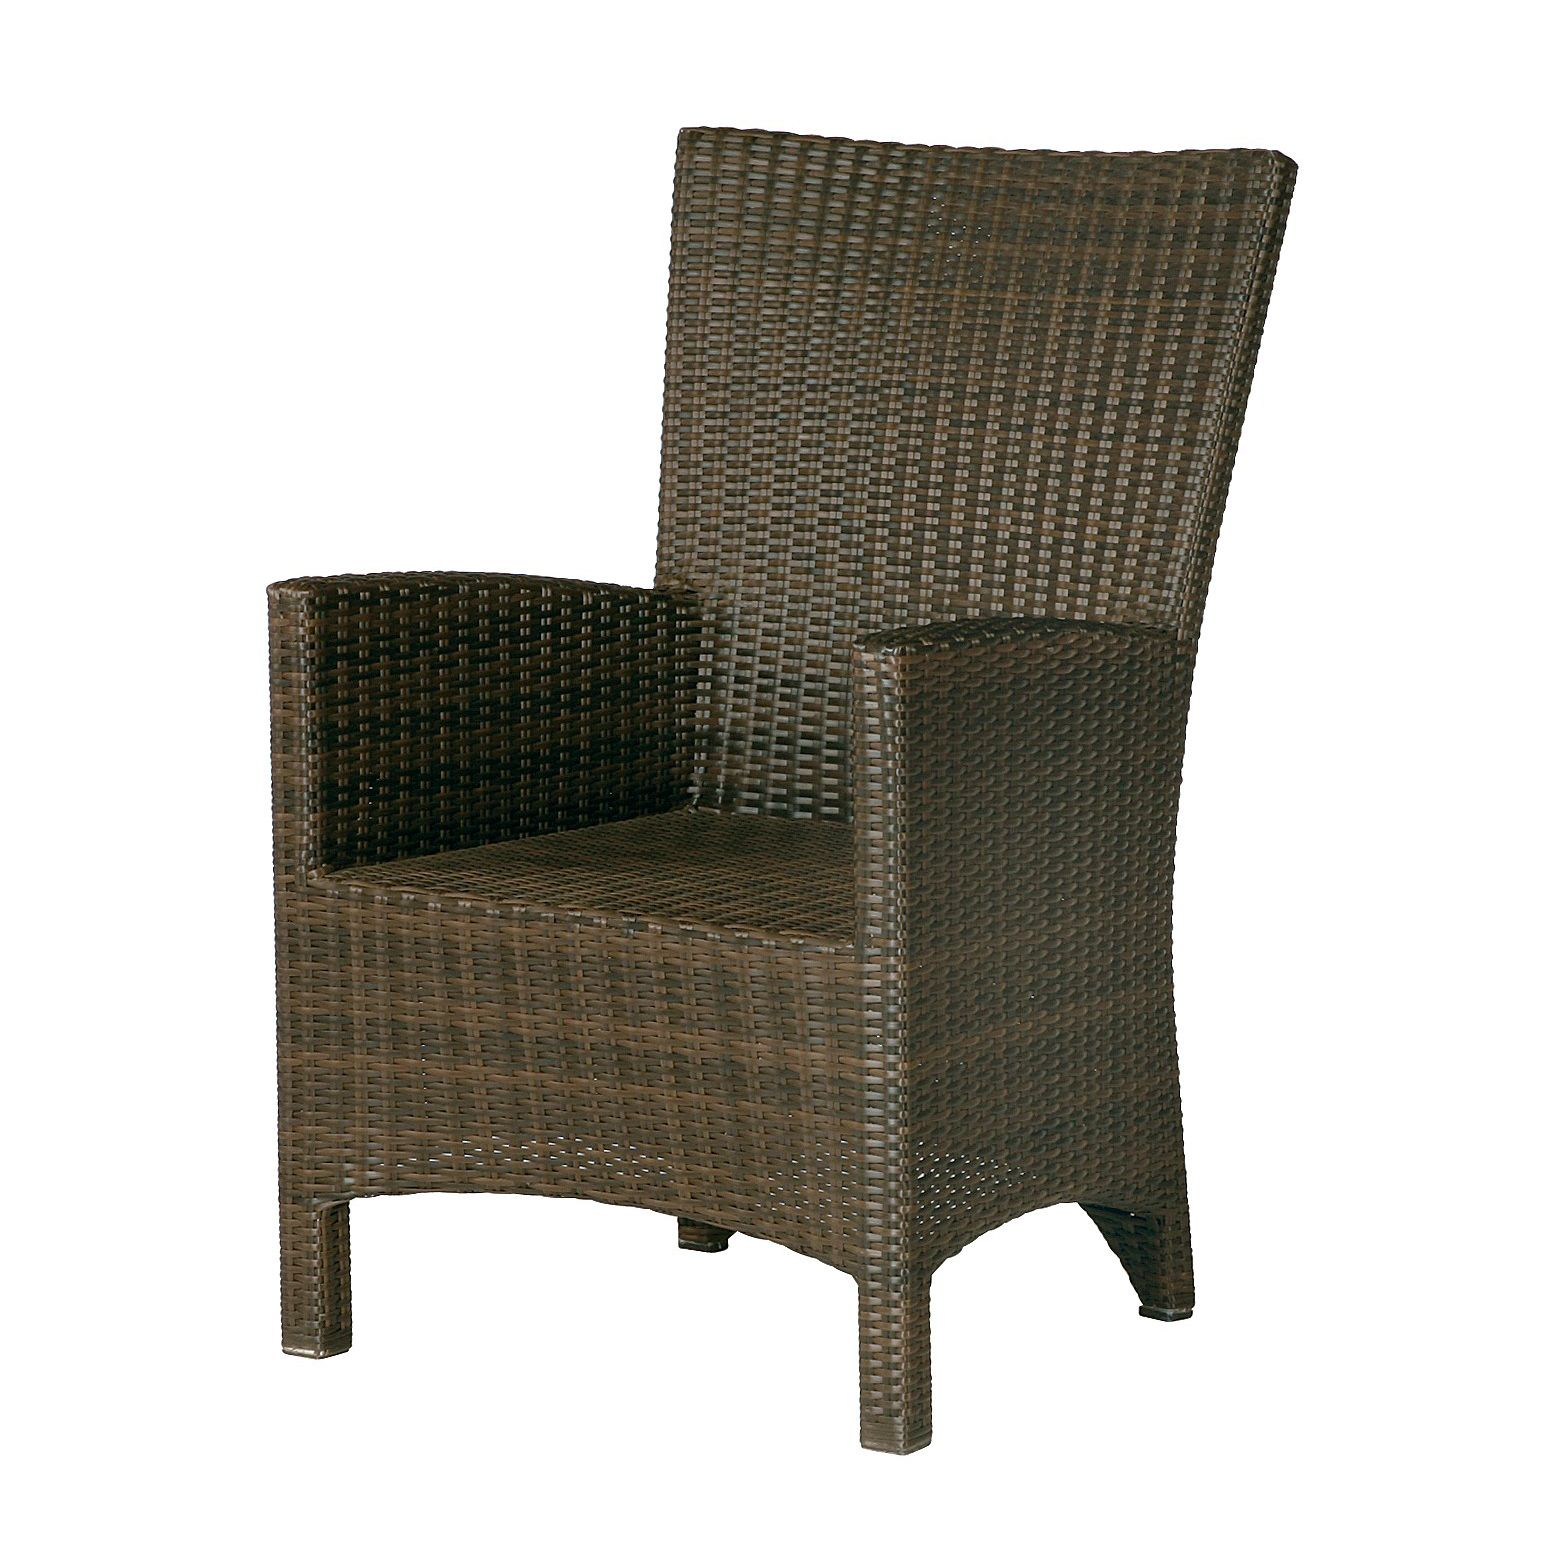 Savannah Deep Seat Outdoor